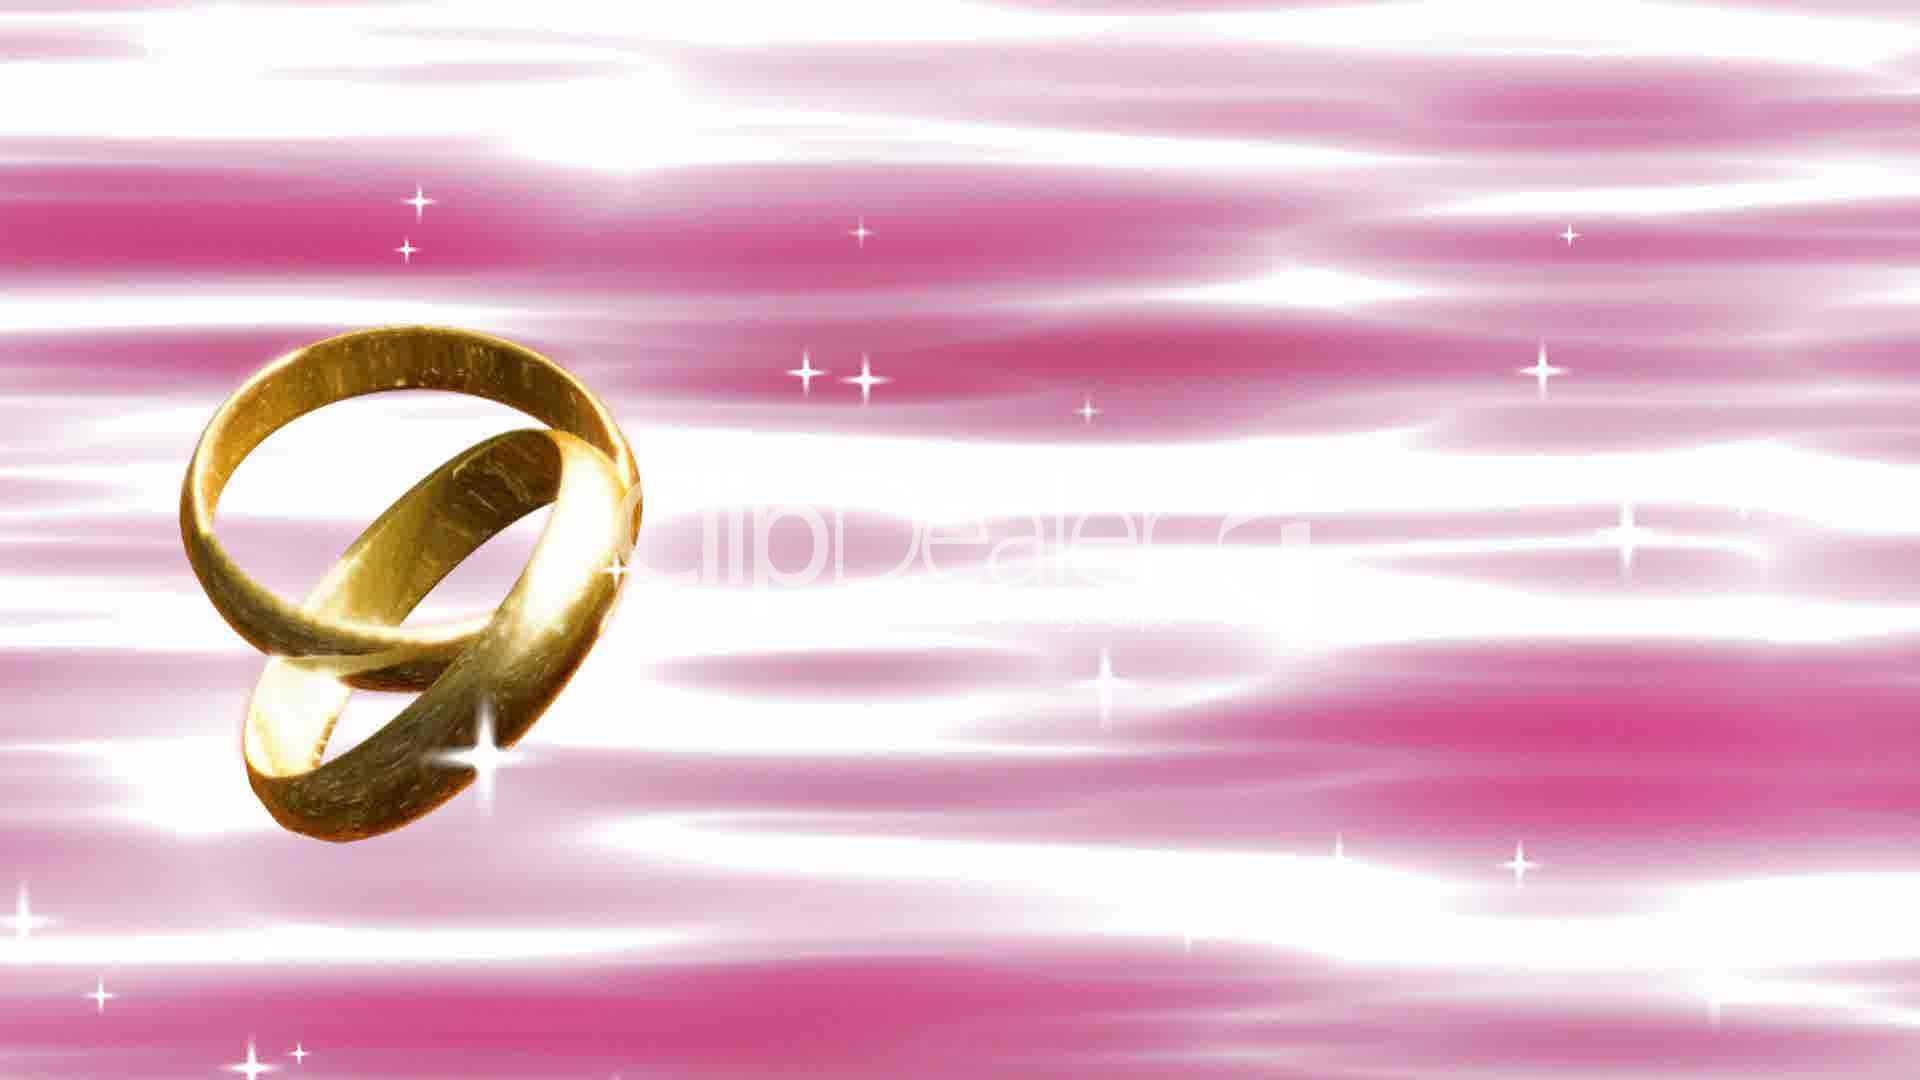 Wedding Ring: Royalty-free video and stock footage